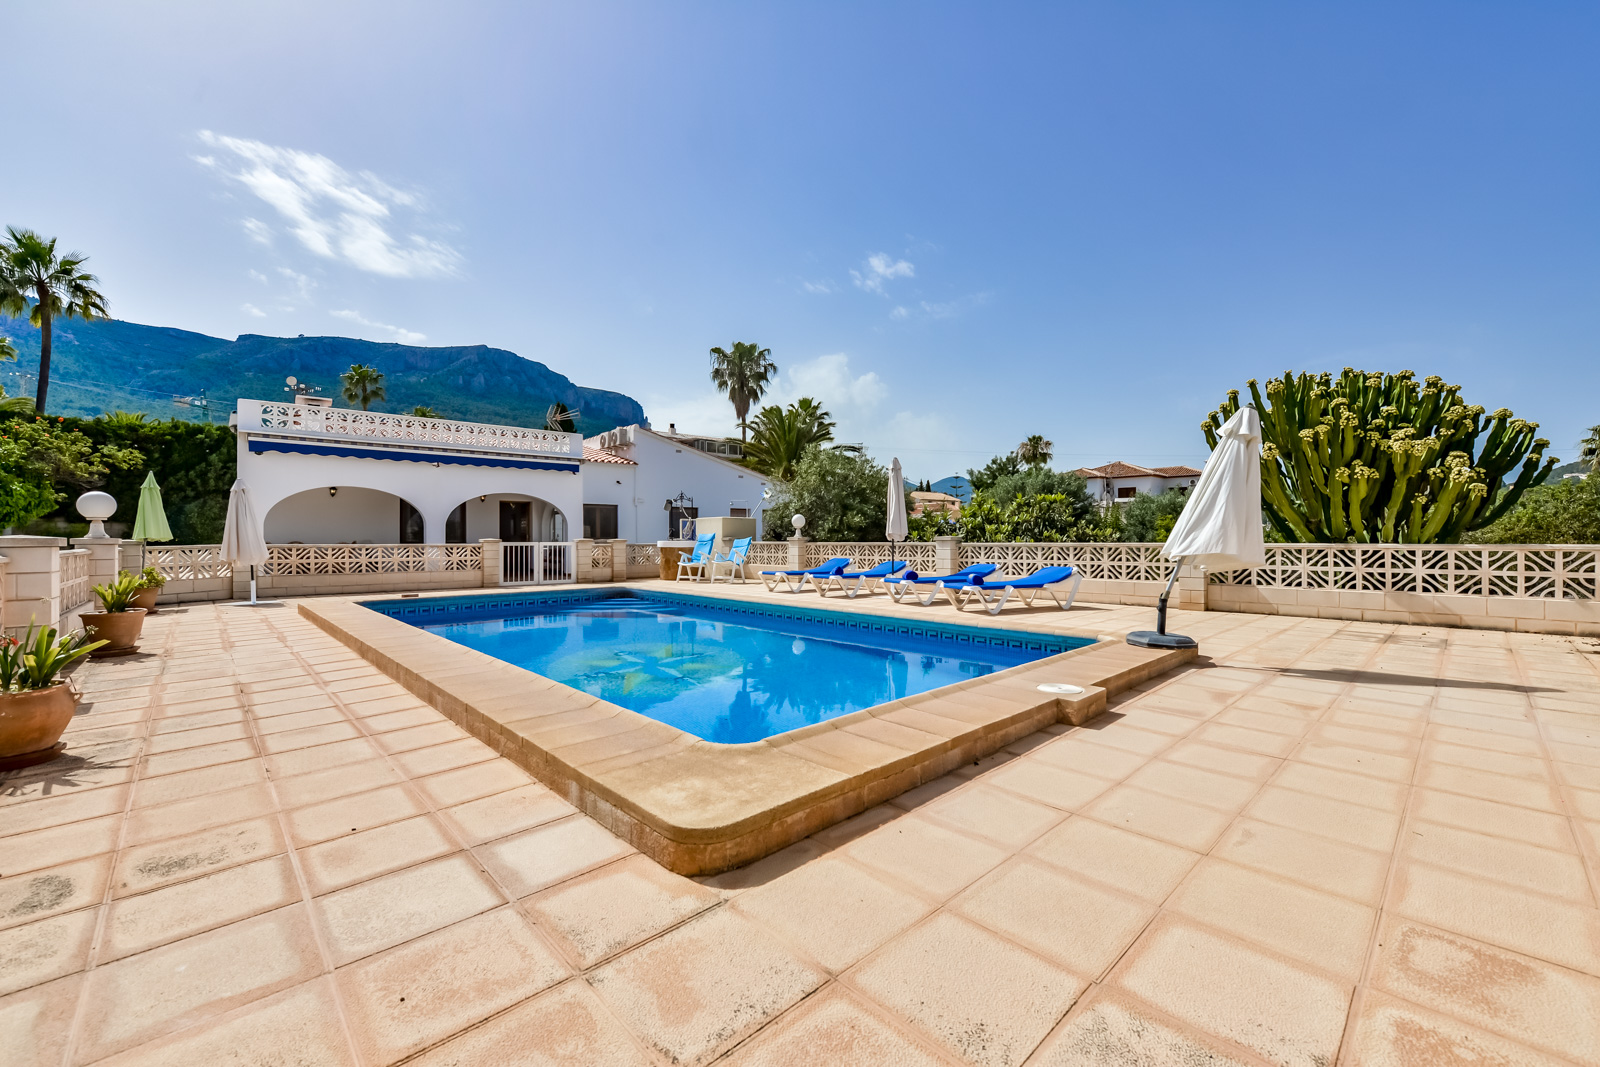 Villa Benicolada, Villa  with private pool in Calpe, on the Costa Blanca, Spain for 6 persons...